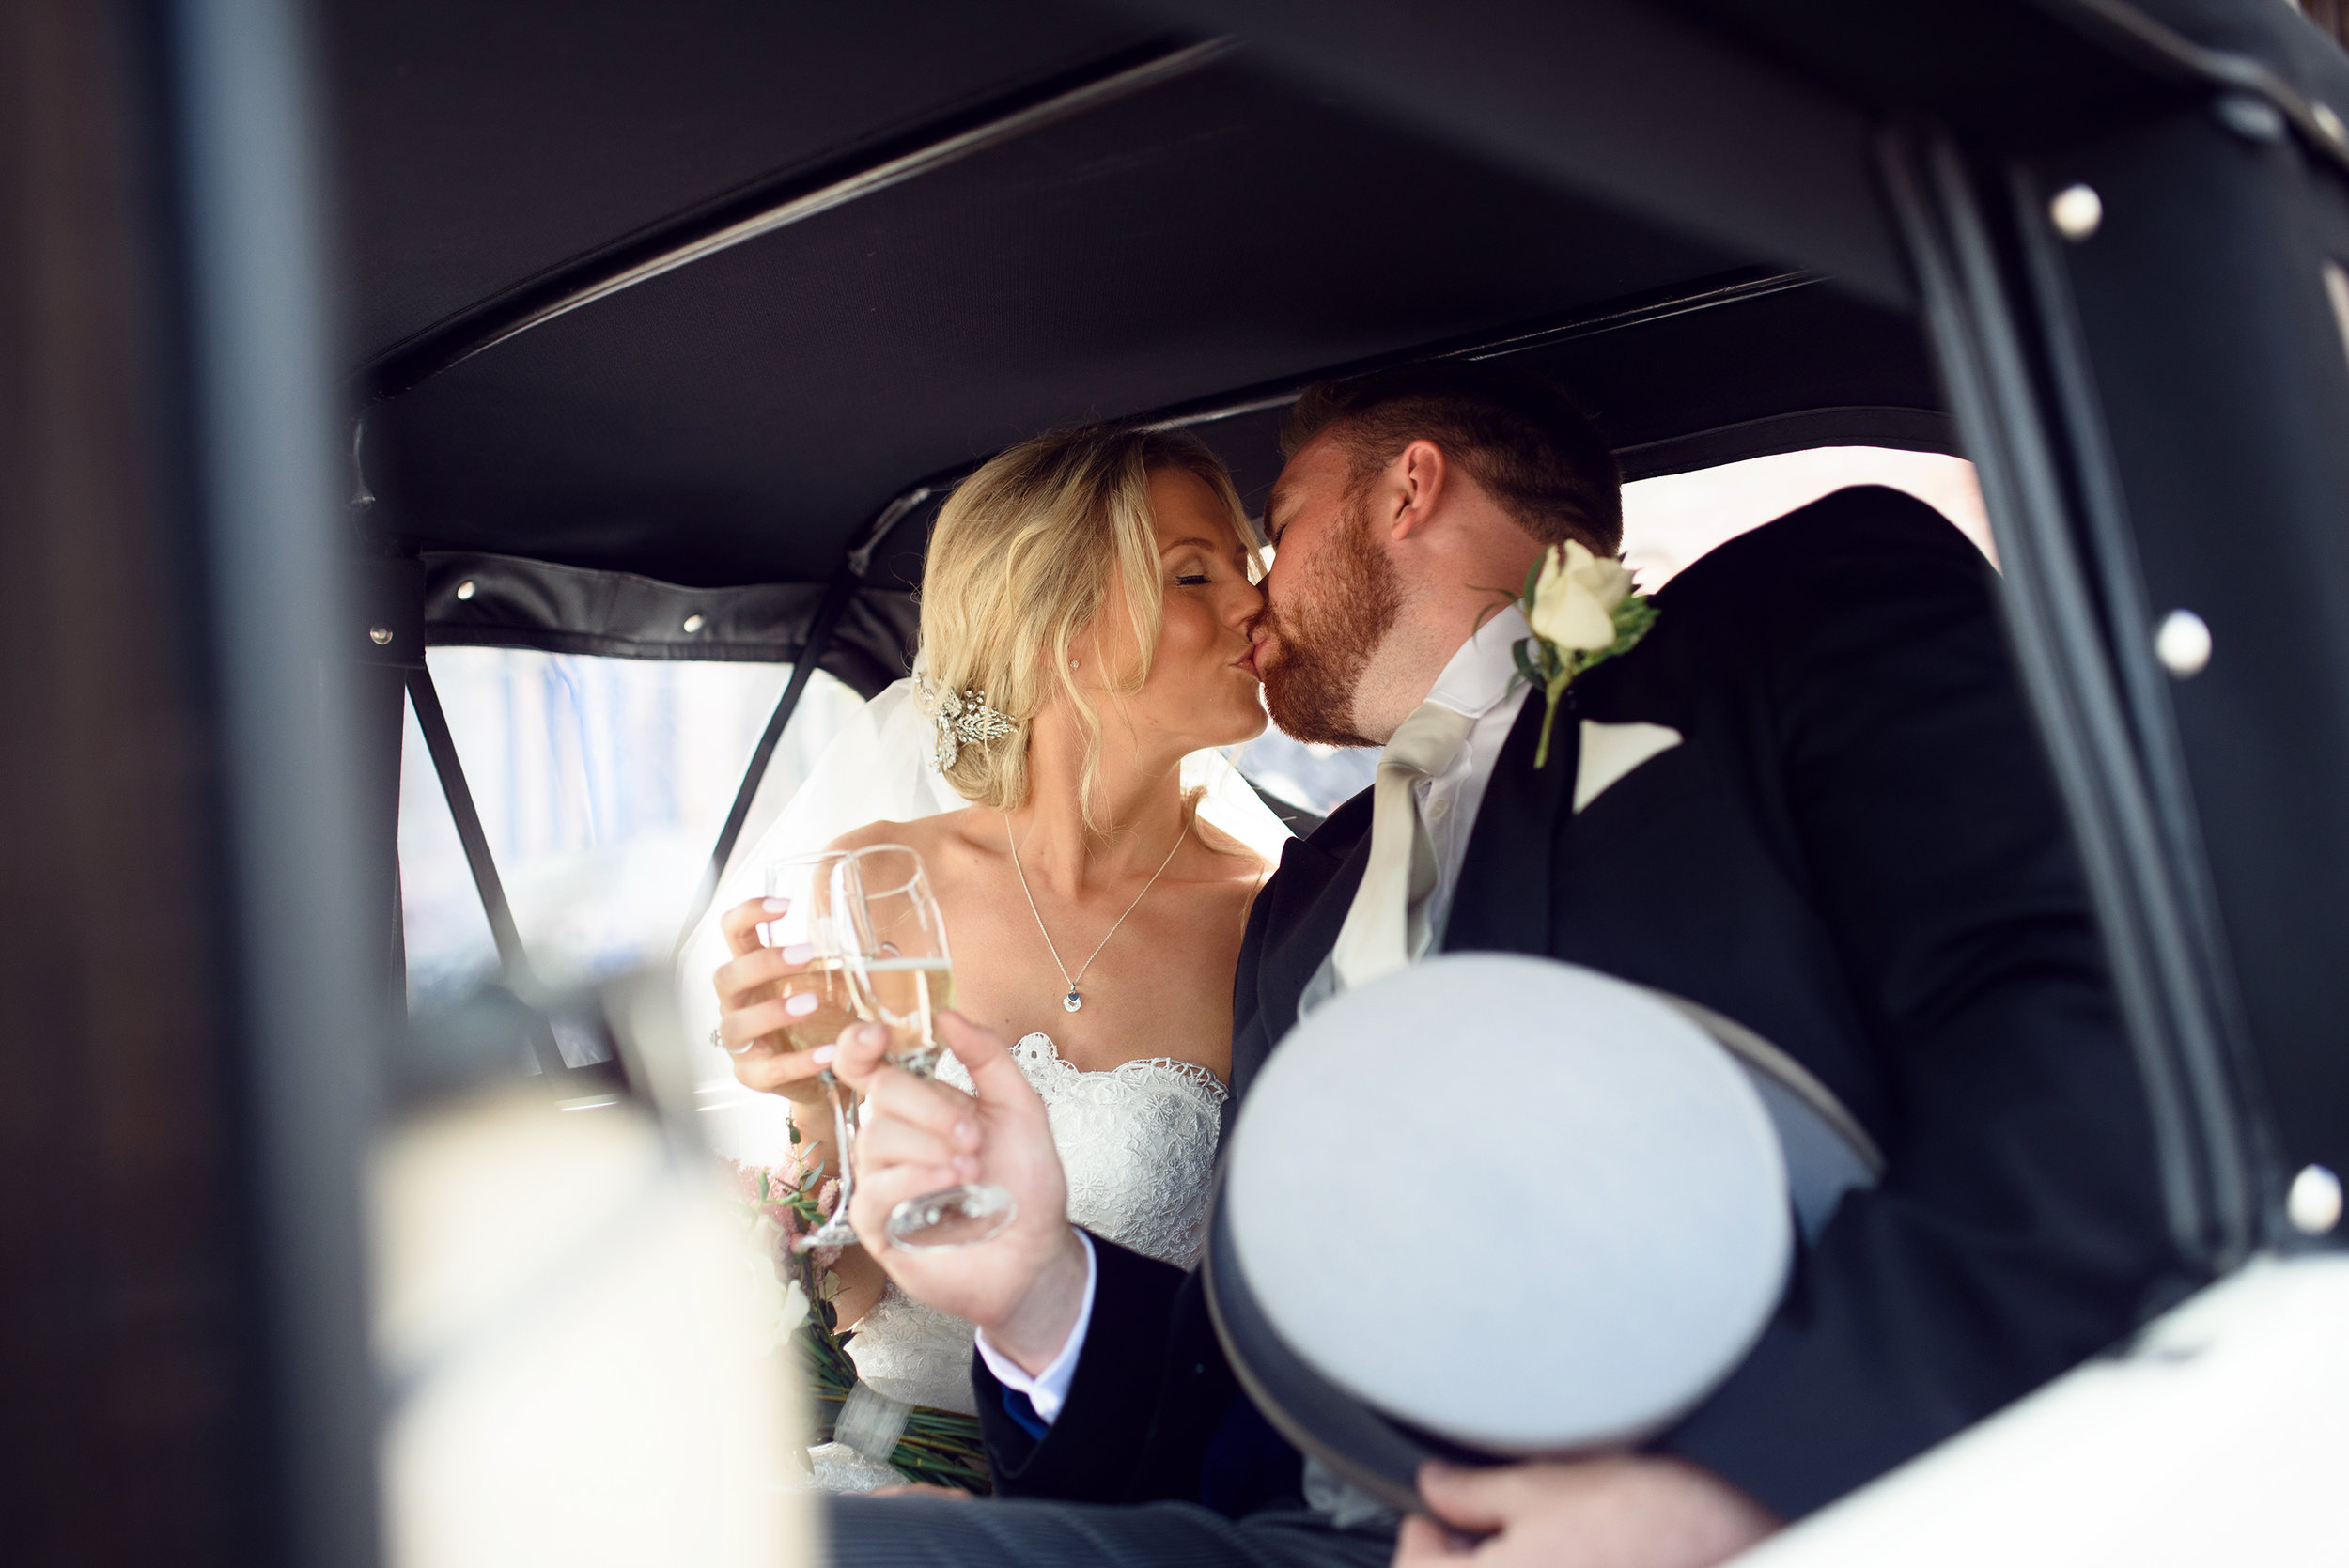 The bride and groom kissing in the back of the car